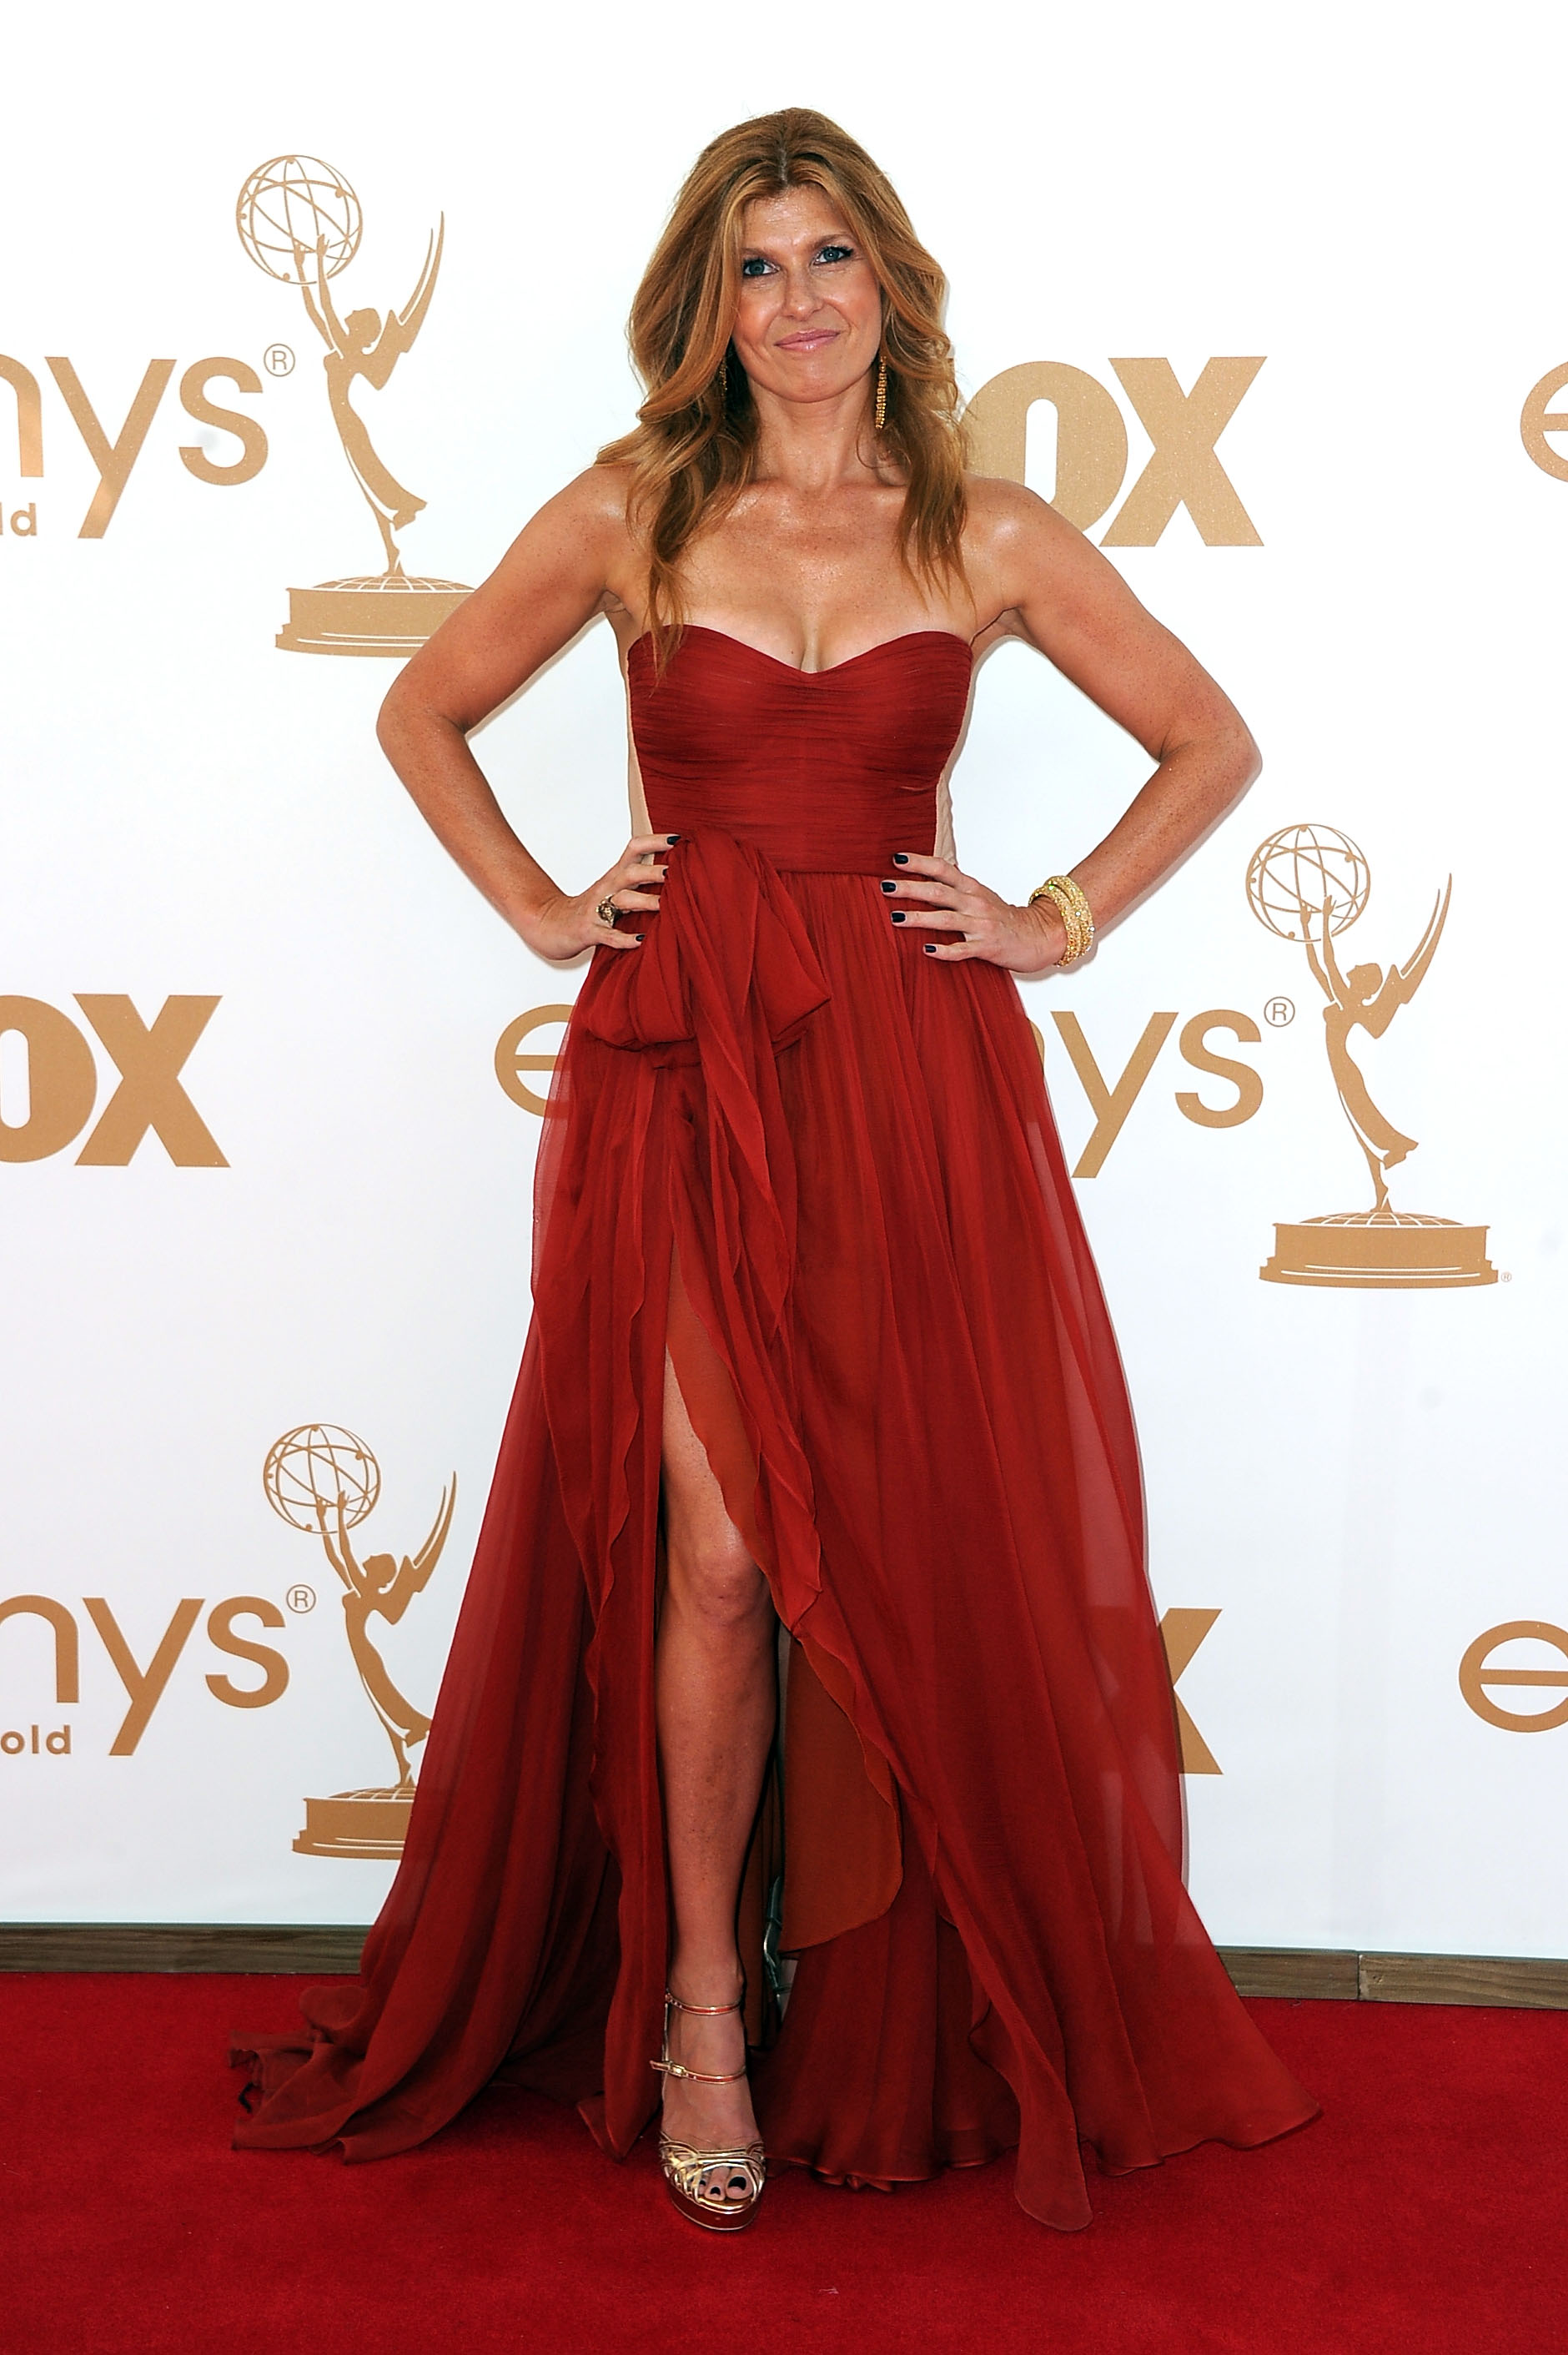 Connie Britton at the 2011 Emmys.